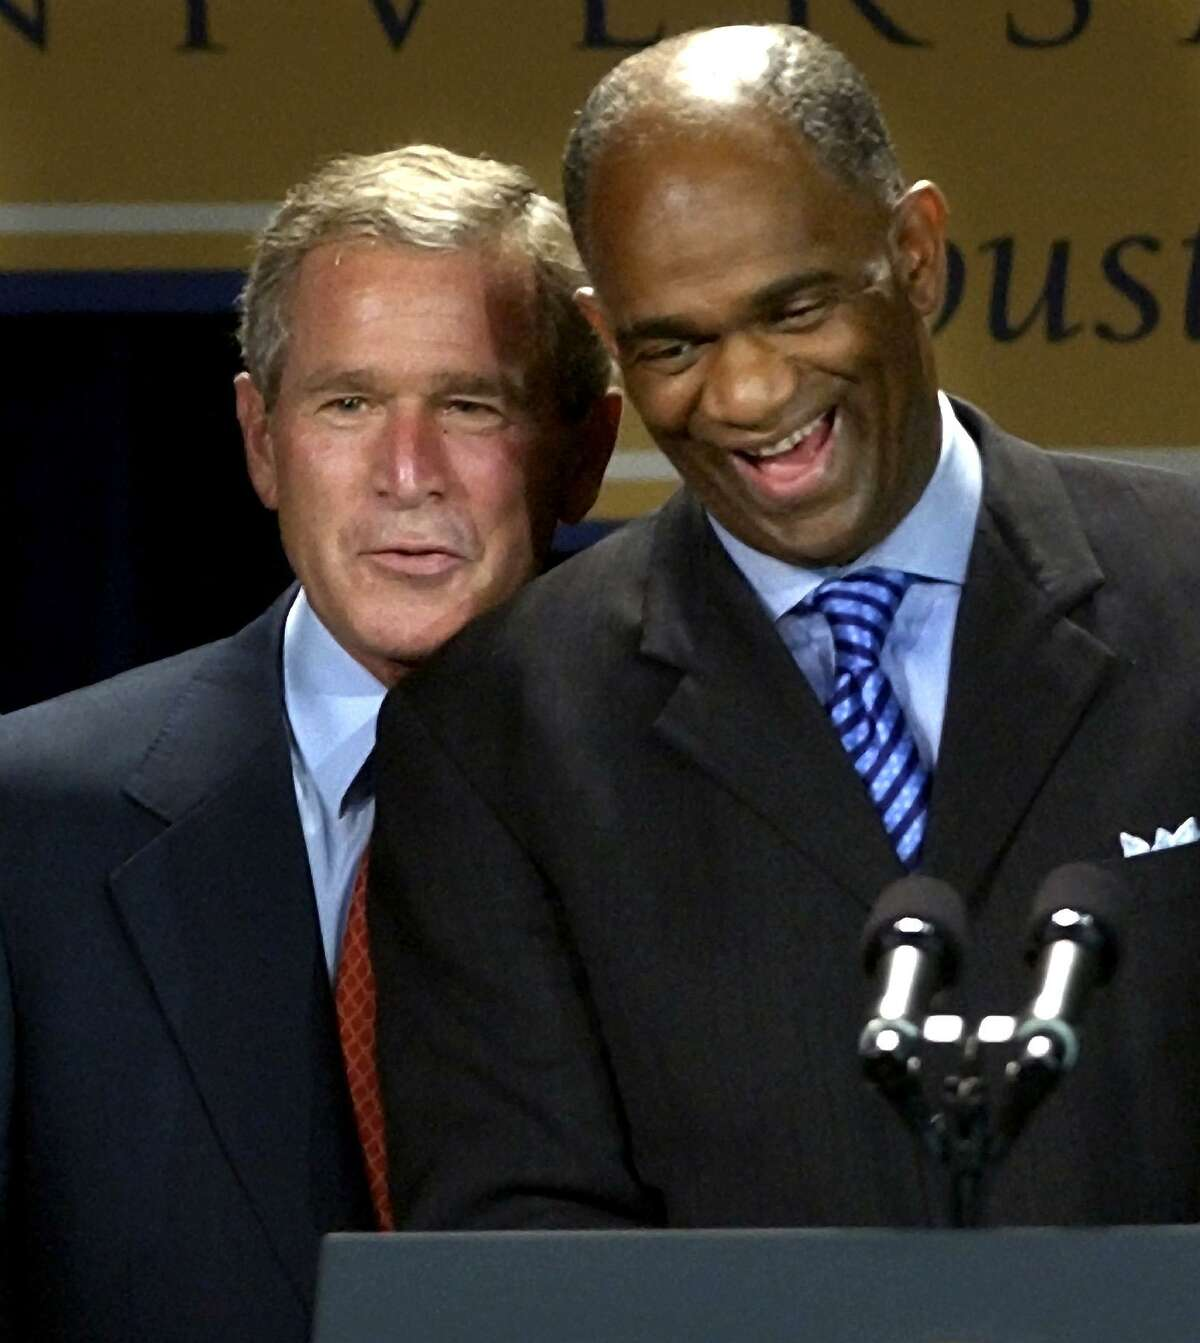 President George W. Bush, left, shares a laugh with Pastor Kirbyjon Caldwell as they are introduced during a fundraiser for the Power Center in Houston in September 2003. (AP Photo/David J. Phillip)